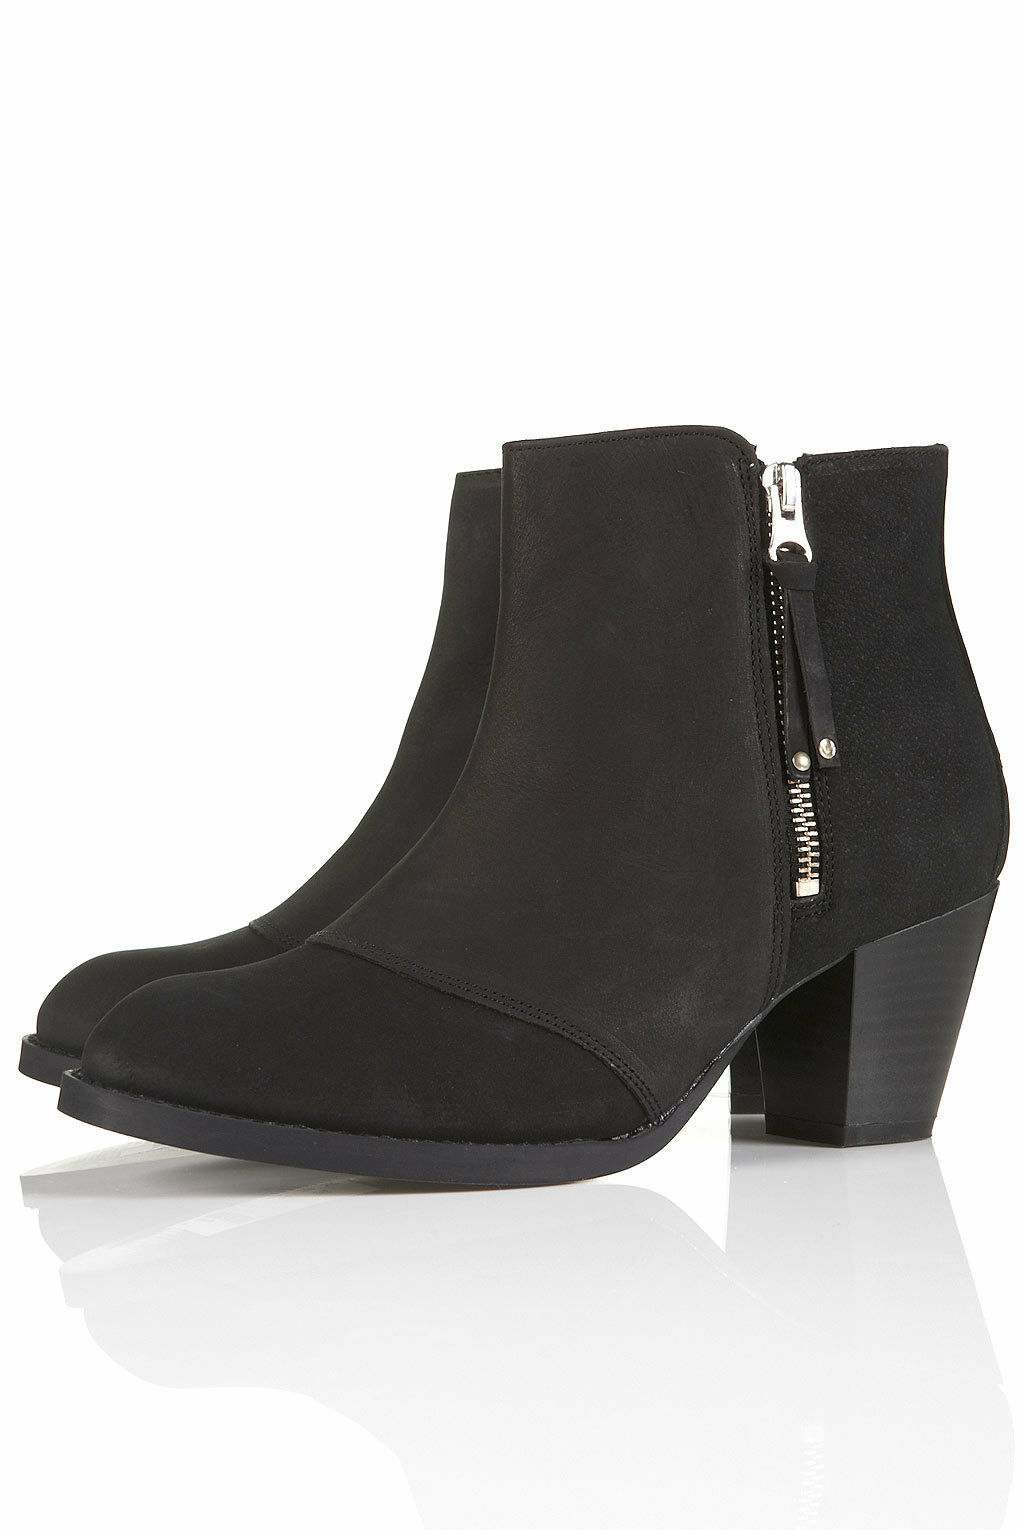 New TOPSHOP AMBUSH leather zip ankle boots UK 8 in Black